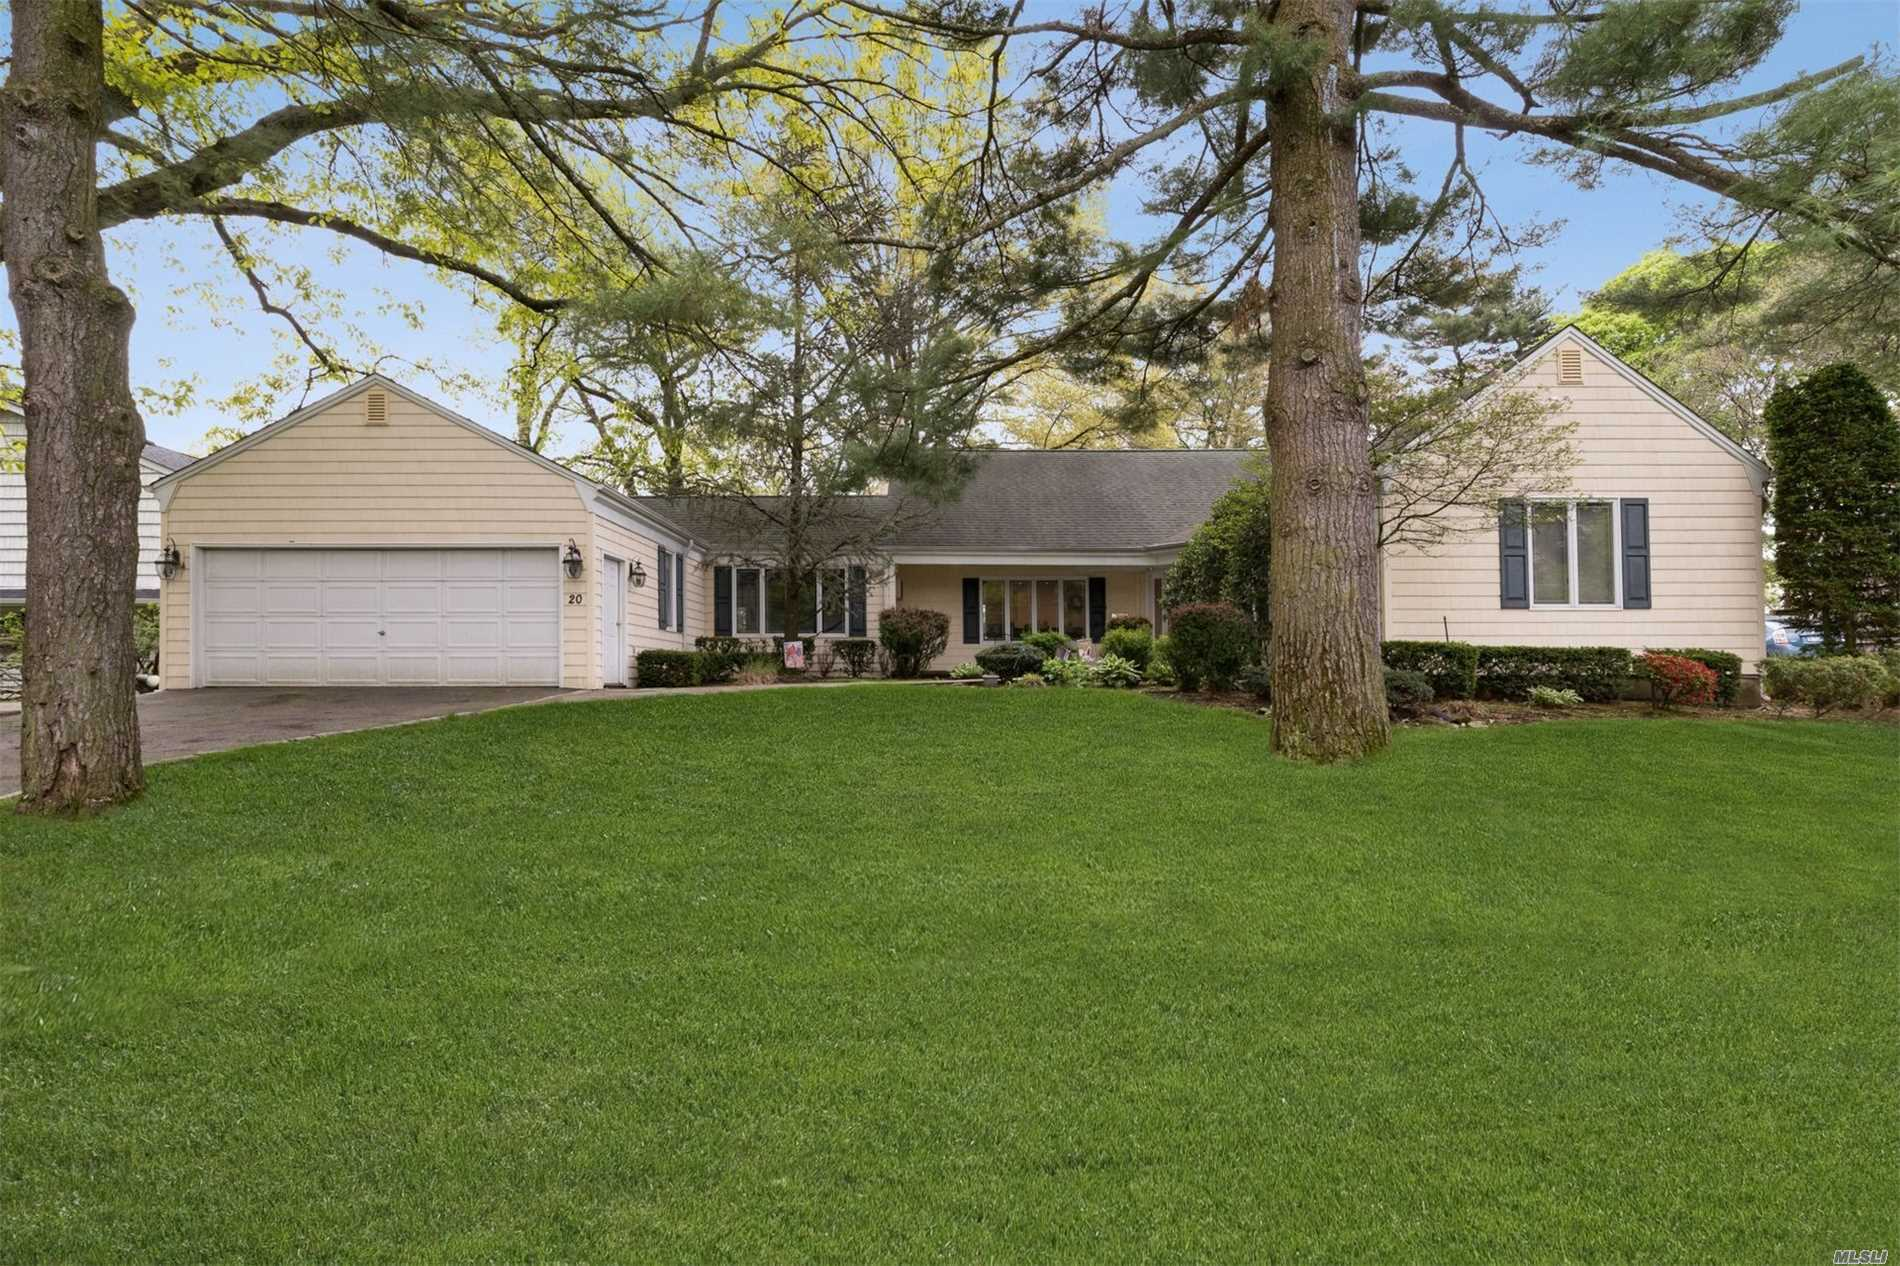 Spacious 4 Bedroom, 4 Full Bath Farm Ranch Set On Almost 1/2 Acre Beautifully Landscaped Property, Features 2 Master Suites On 1st Floor, Large Living Room W/Fireplace, Dining Room, Bright Kitchen W/Breakfast Area, Large Family Room W/Sliding Doors To One Of A Kind Property. Two Additional Bedrooms On 2nd Floor. Location, Location, Location.